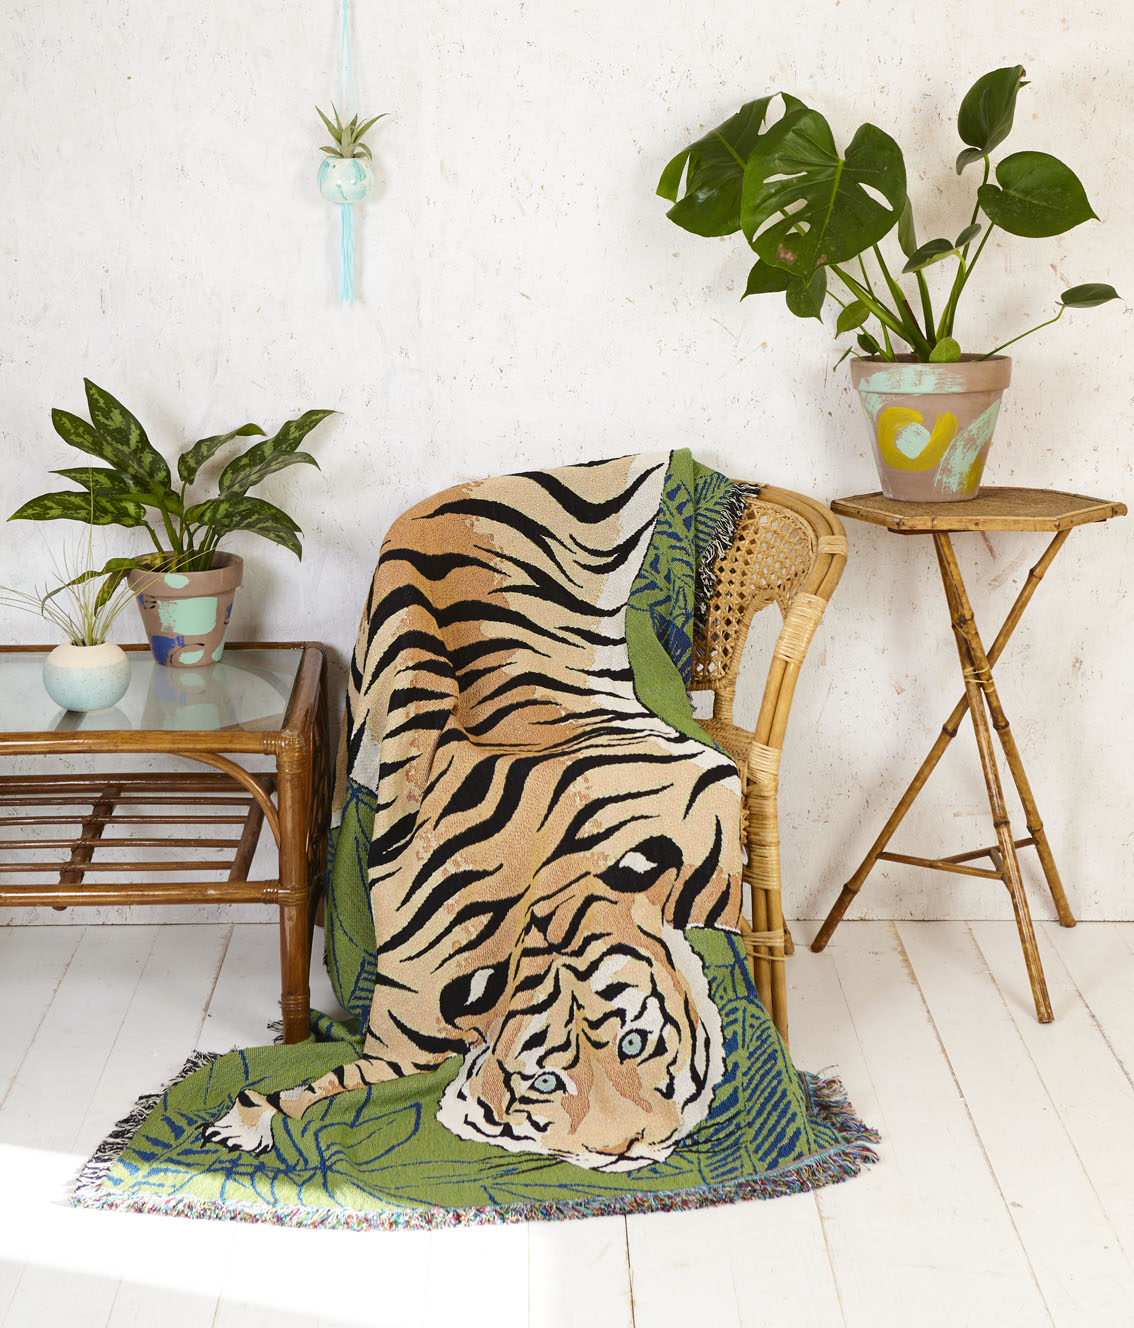 No Tigers were harmed in the making of this throw!